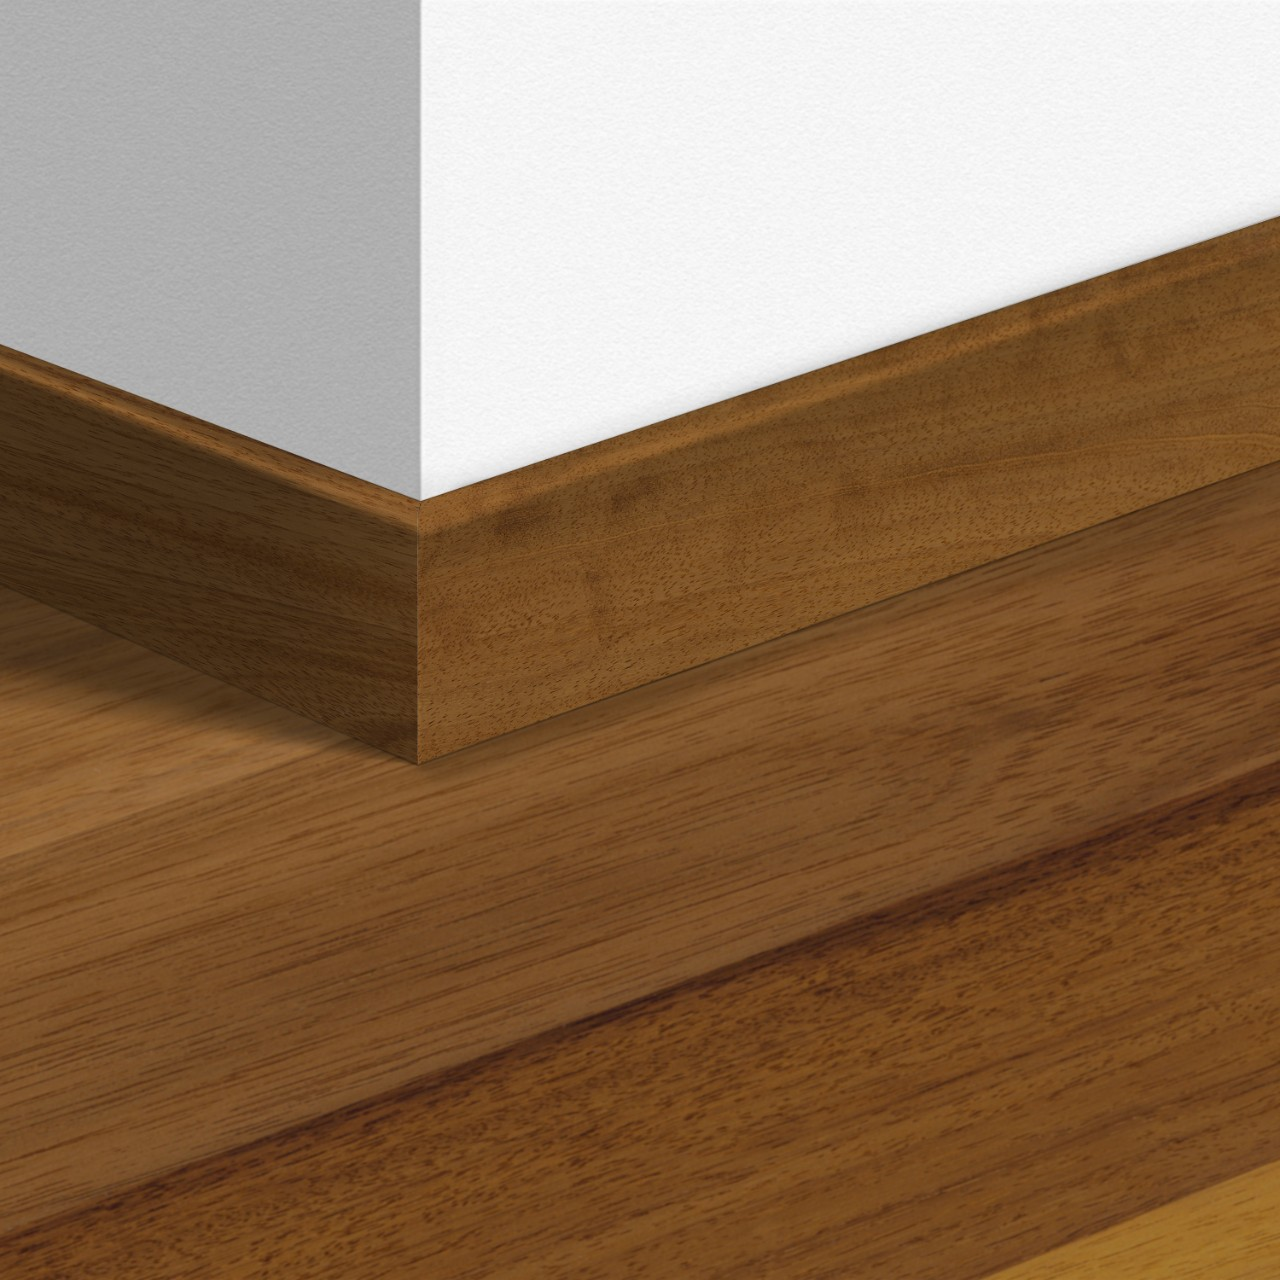 QSWPPSKR Parquet Accessories Parquet Skirting Board (matching colour) QSWPPSKR03487